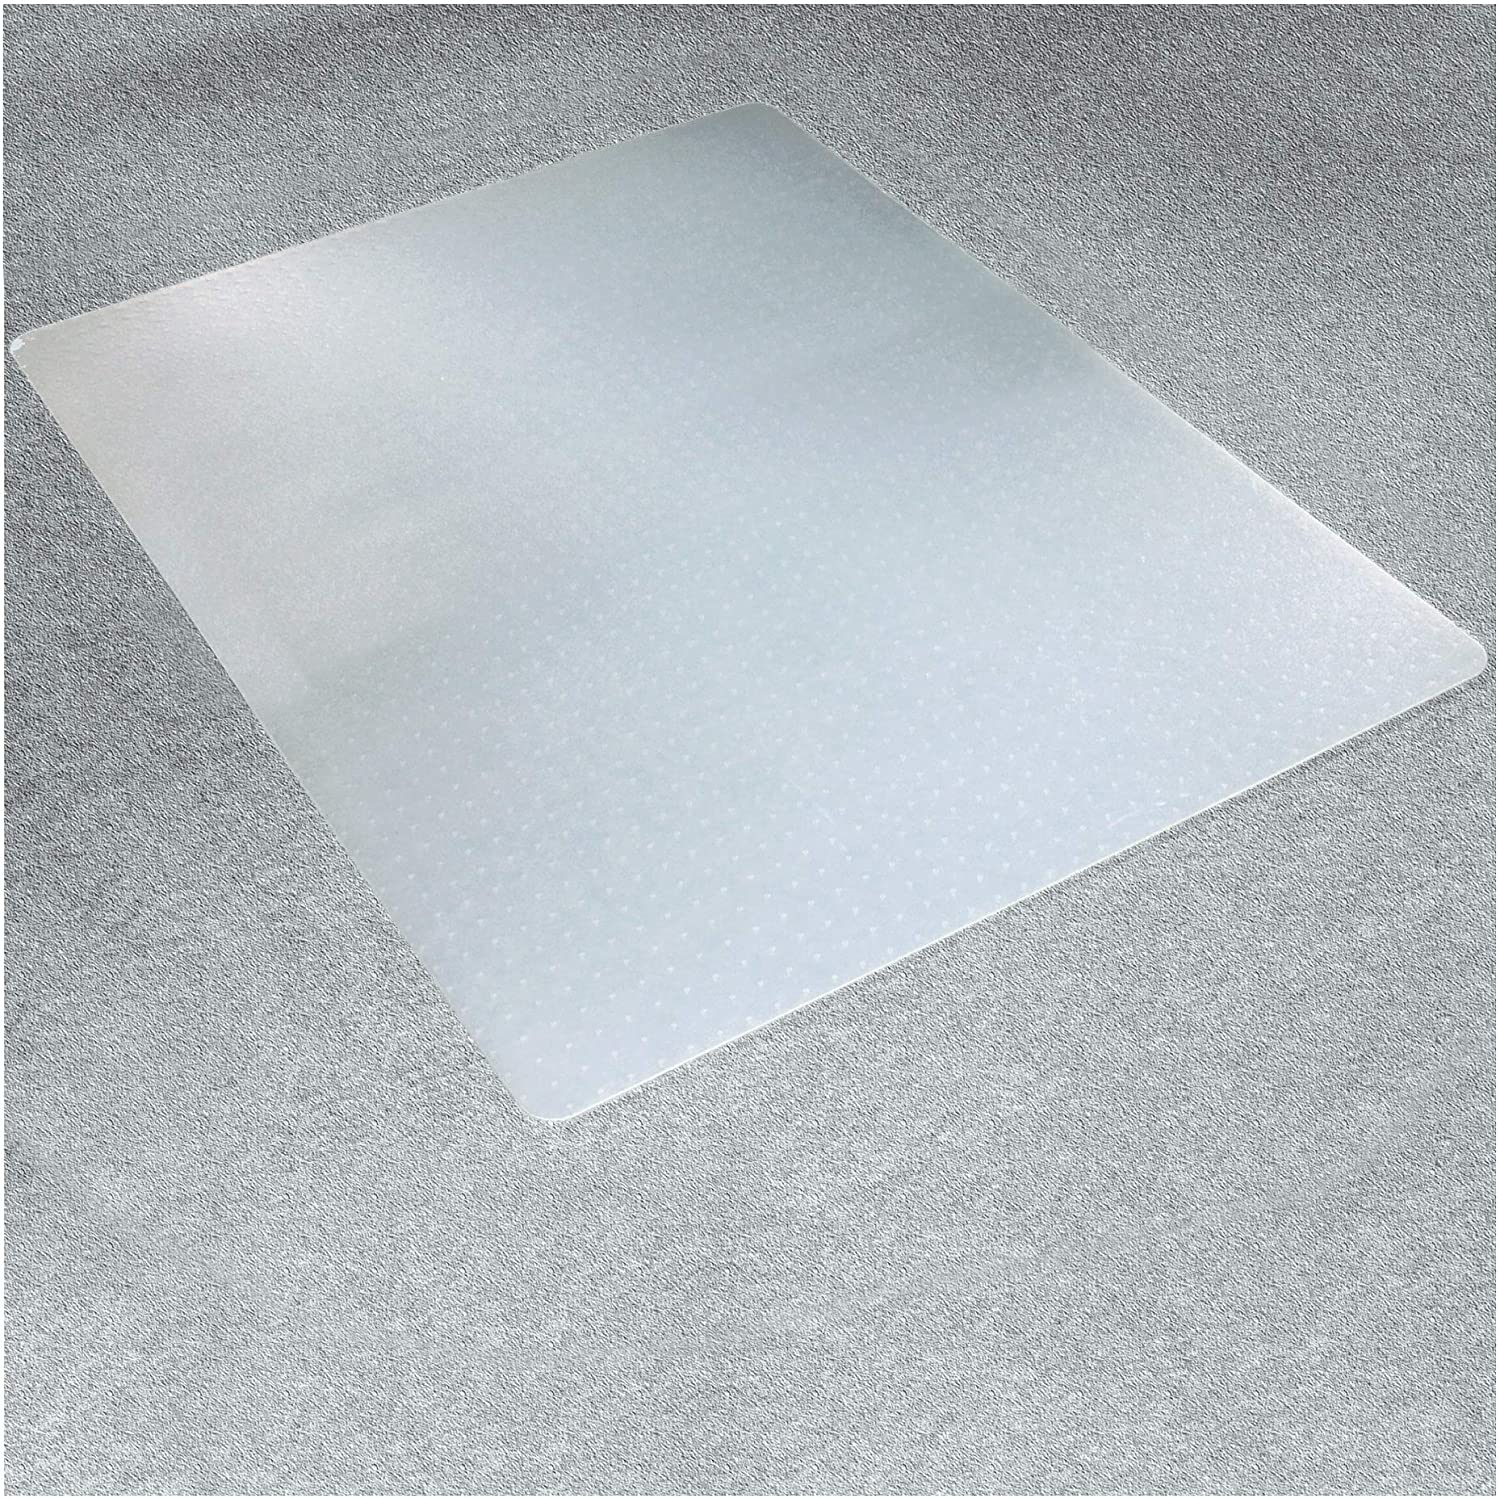 Marvelux Polypropylene Chair Mat for Low Pile Carpets and Carpet Tiles (up to 1/4